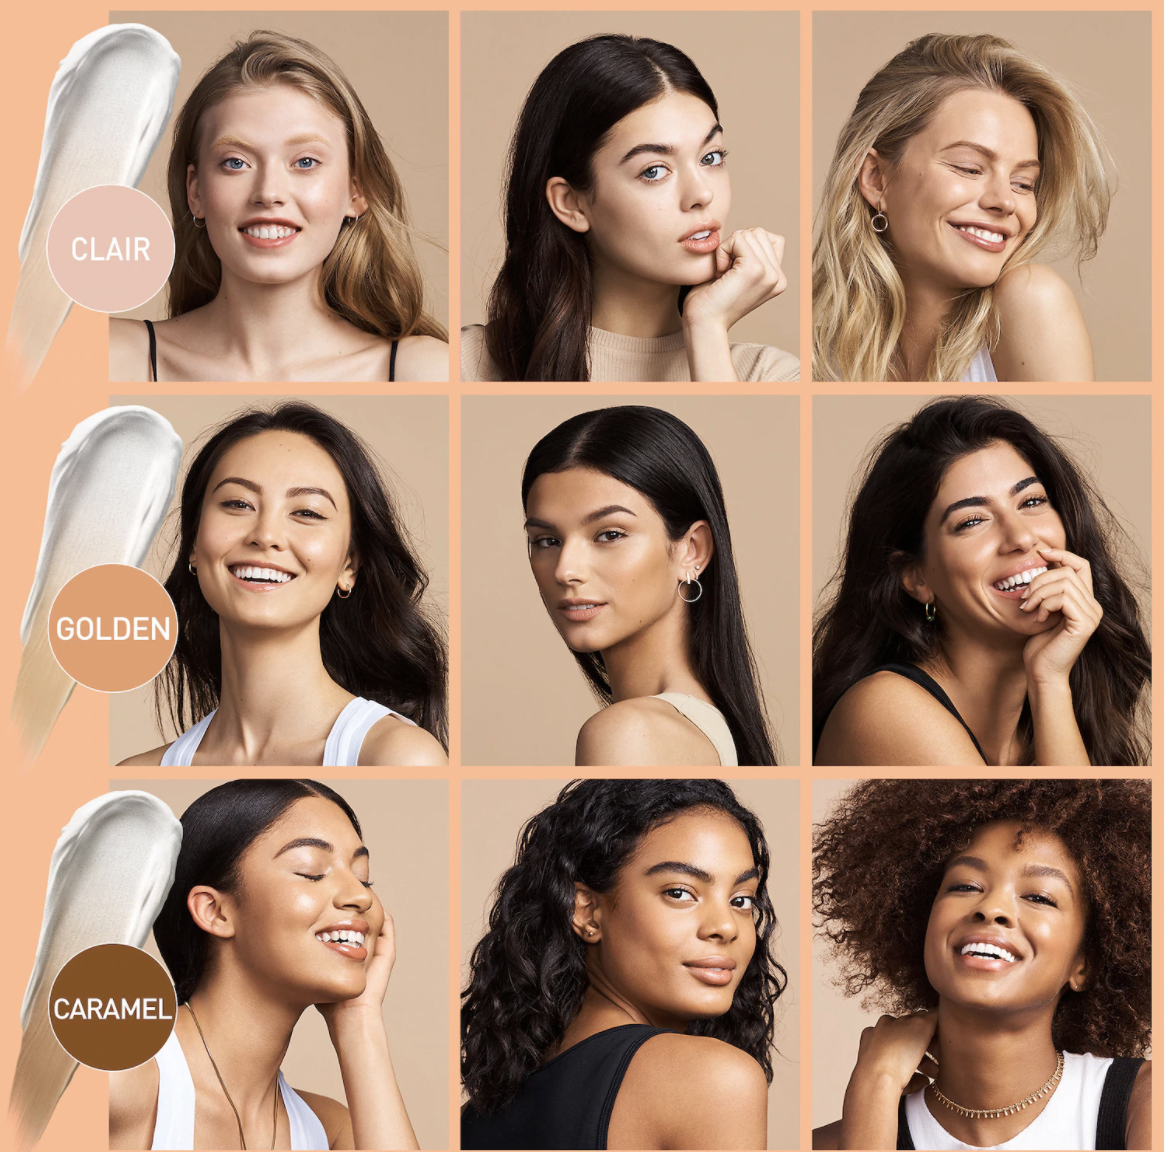 A range of models wearing the cream to show that it fits many skin tones and provides smooth glowy skin